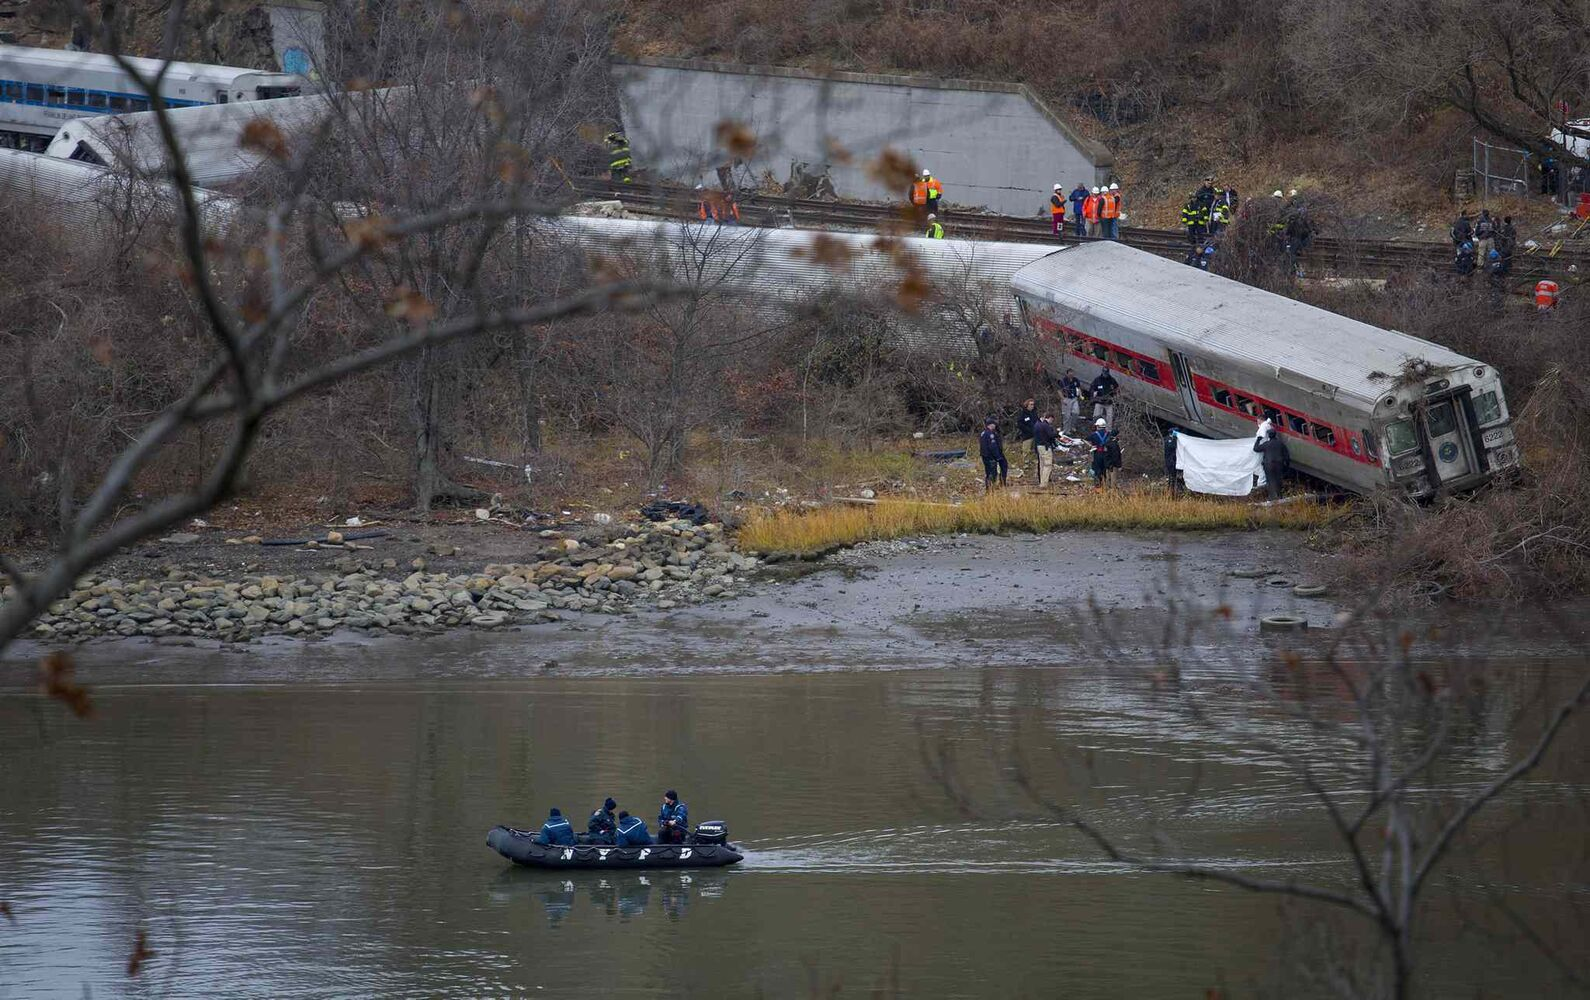 Viewed from Manhattan, first responders and others work near a victim next to a derailed Metro North passenger train.